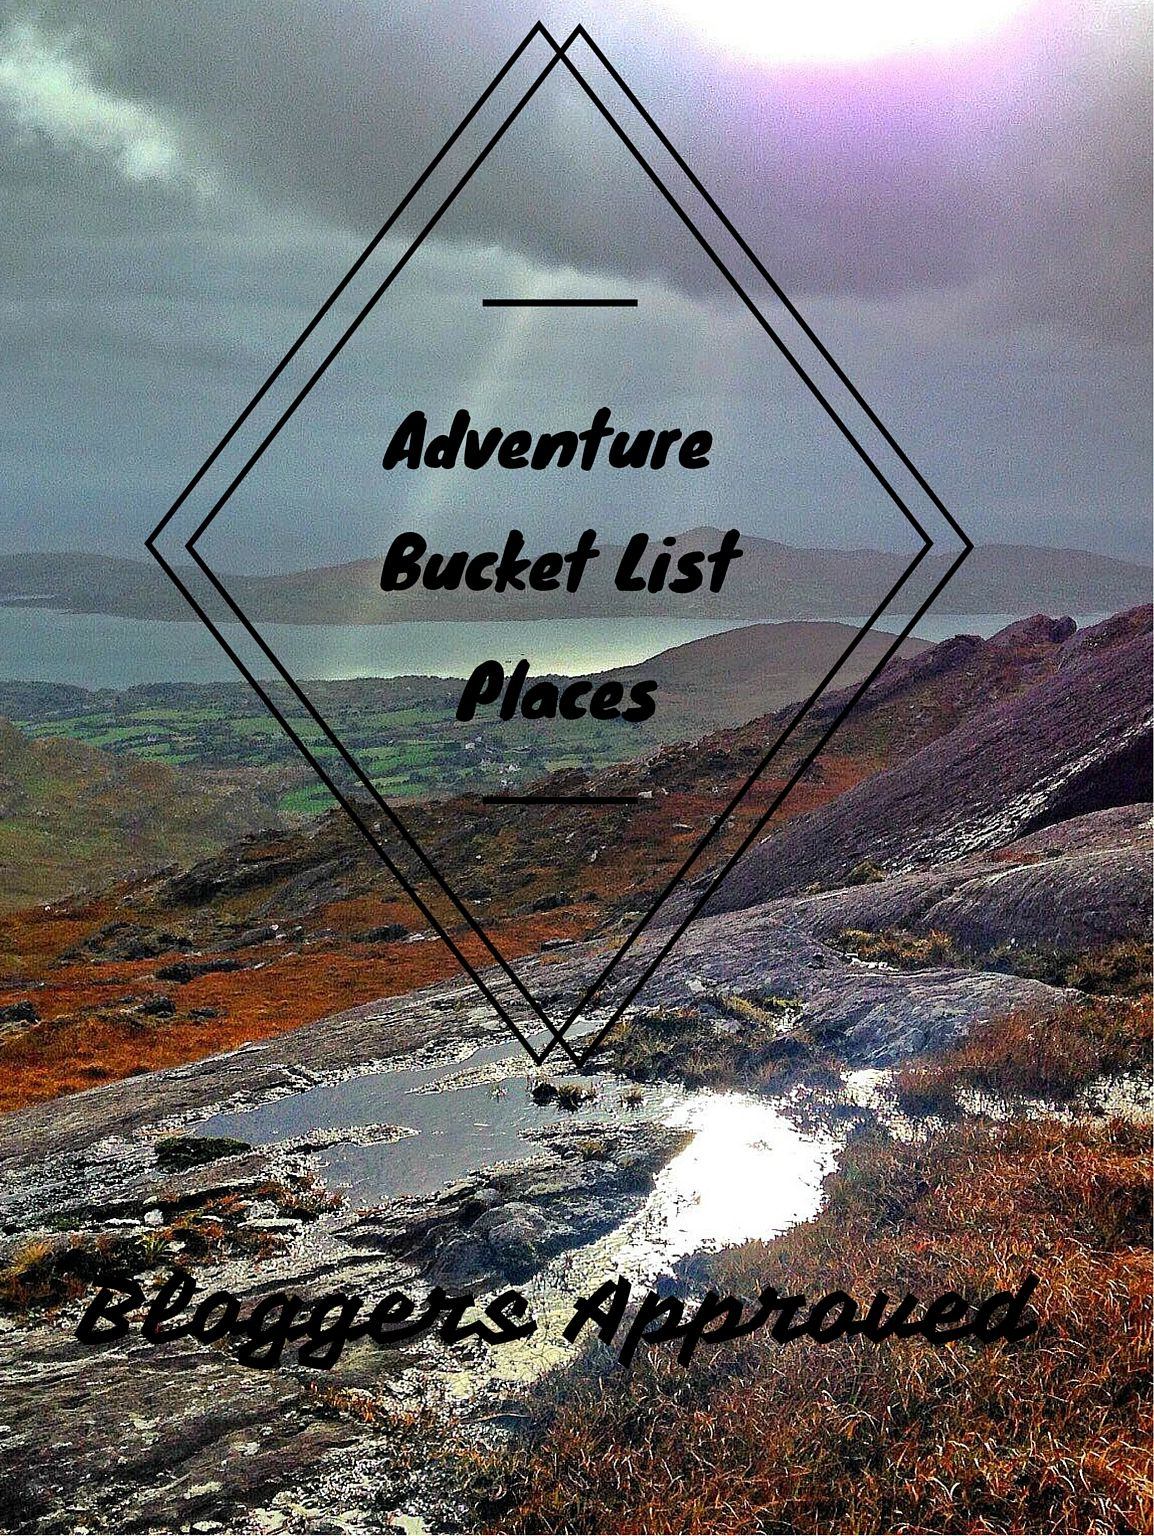 Here it is - the ultimate adventure travel destinations tested and approved by bloggers of the world. Get your pen and paper ready!